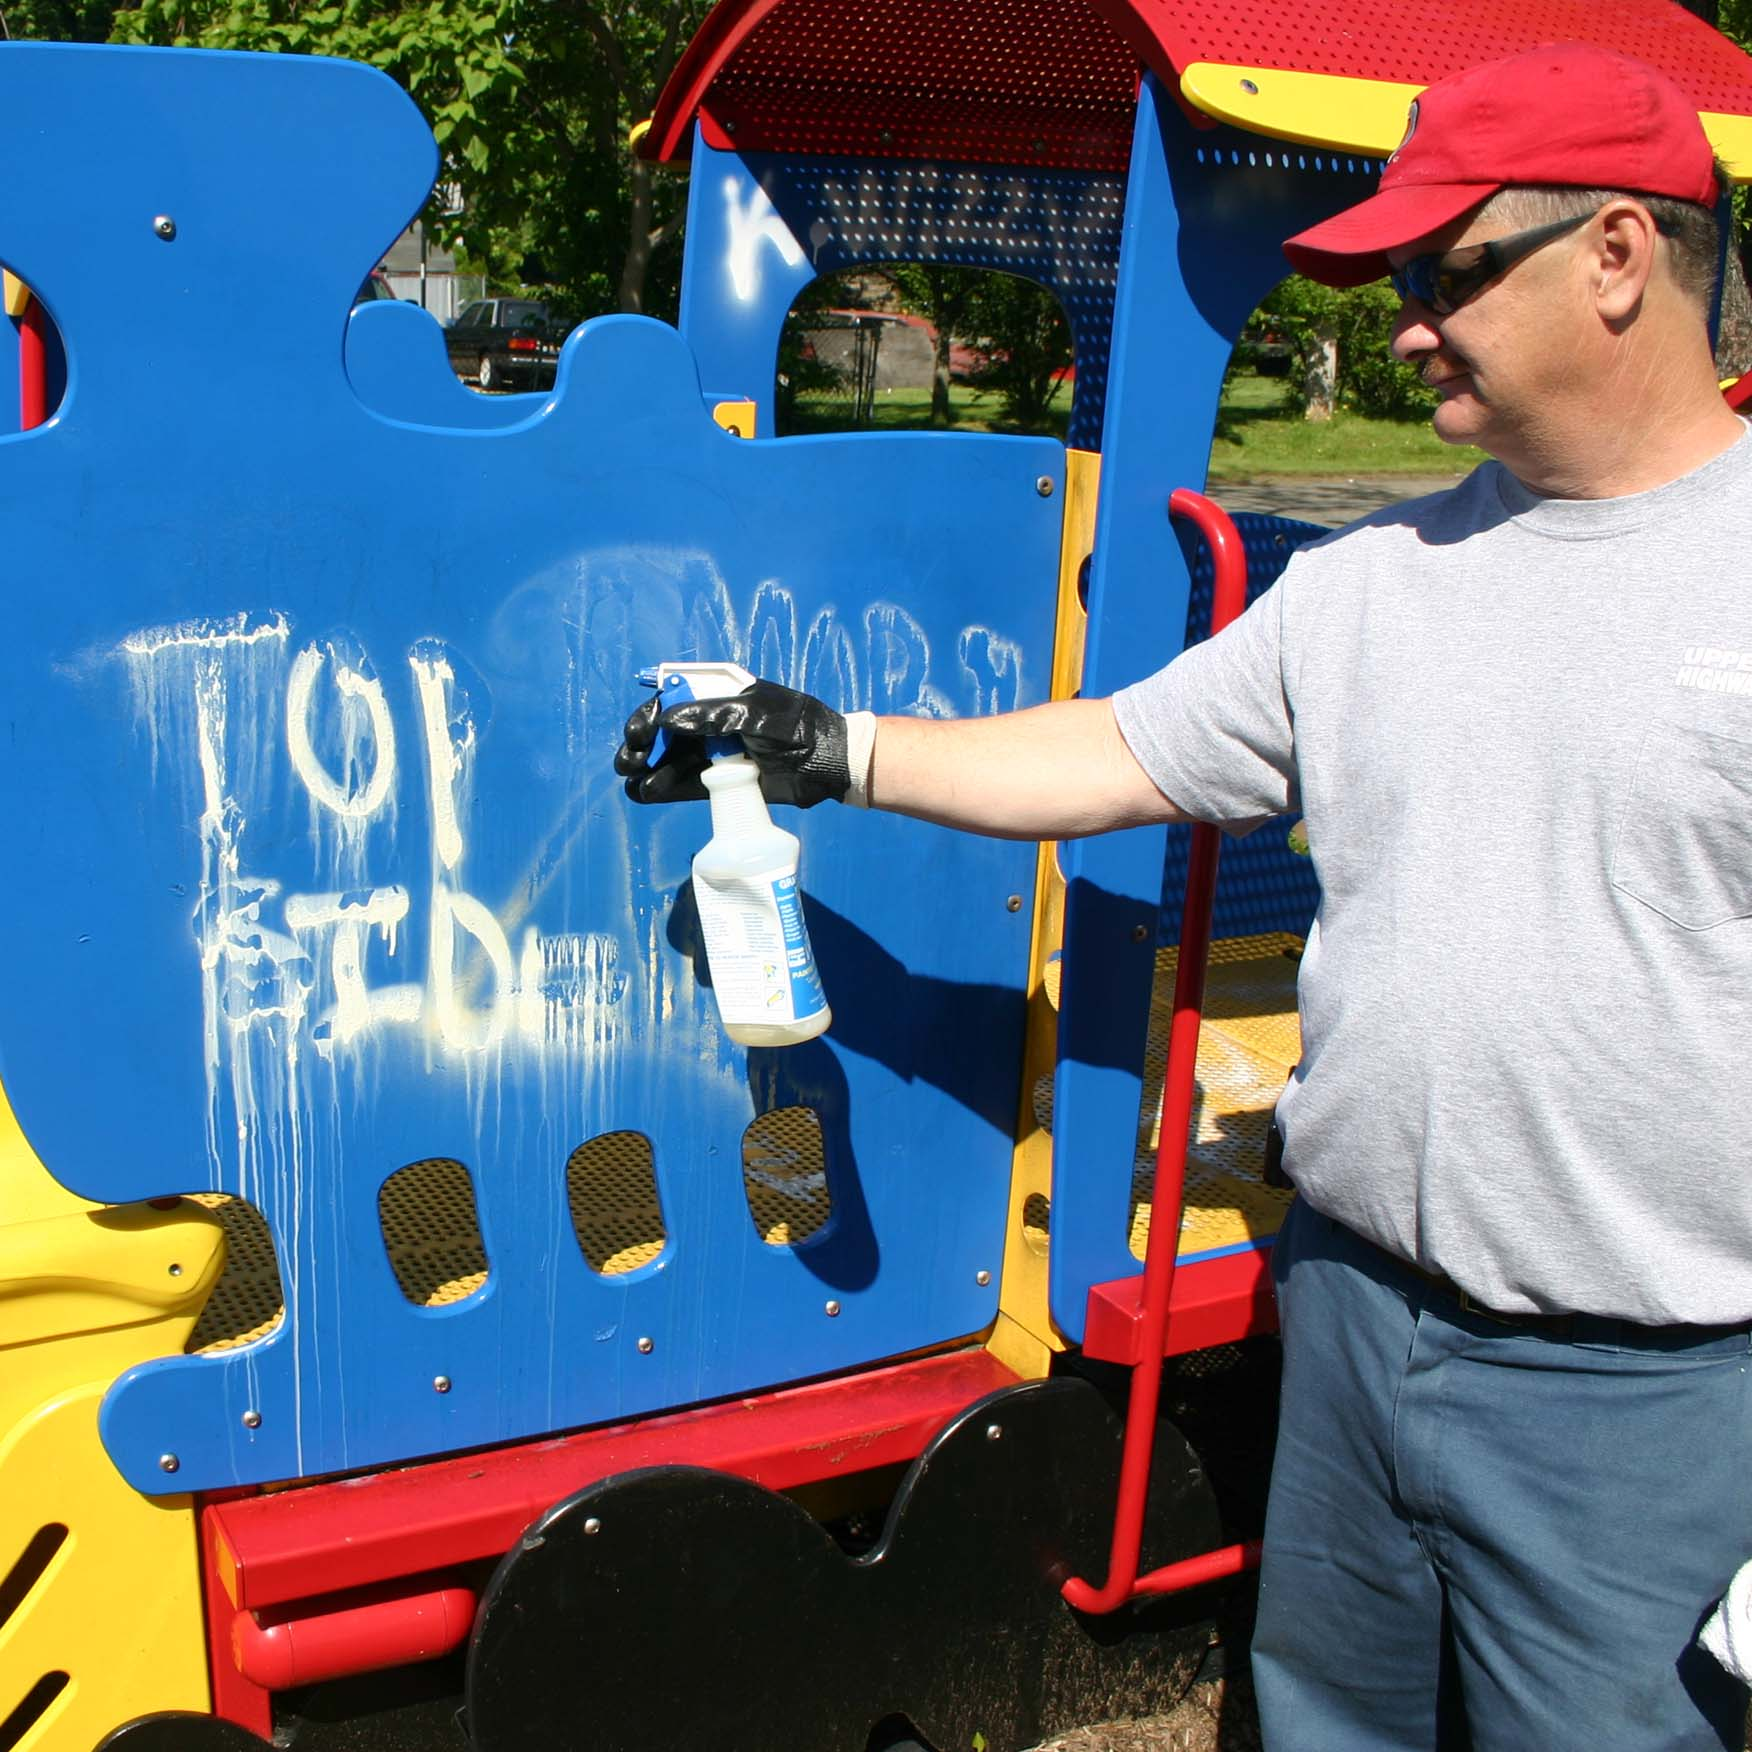 Graffiti Spray Remover Tagaway being applied to school playground